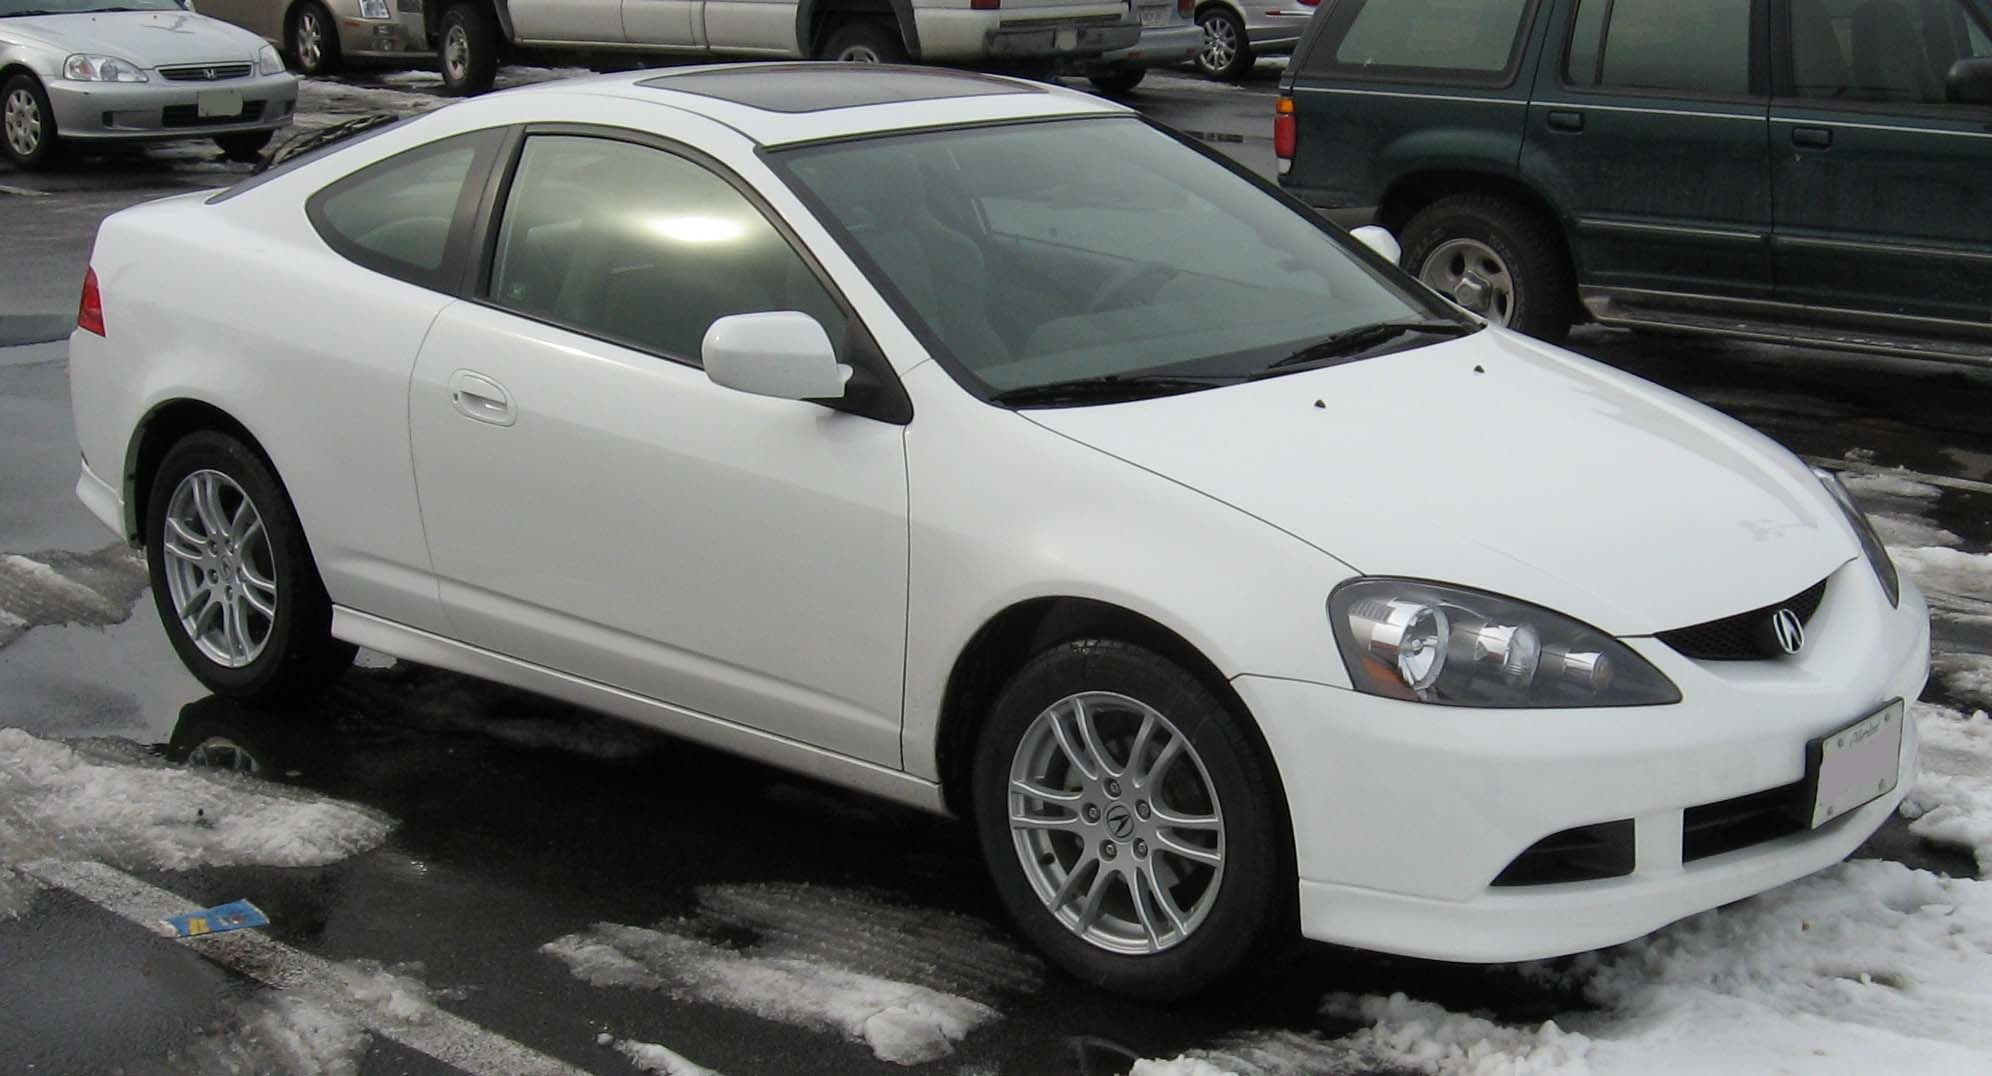 Acura RSX Japanese Vehicles Pinterest